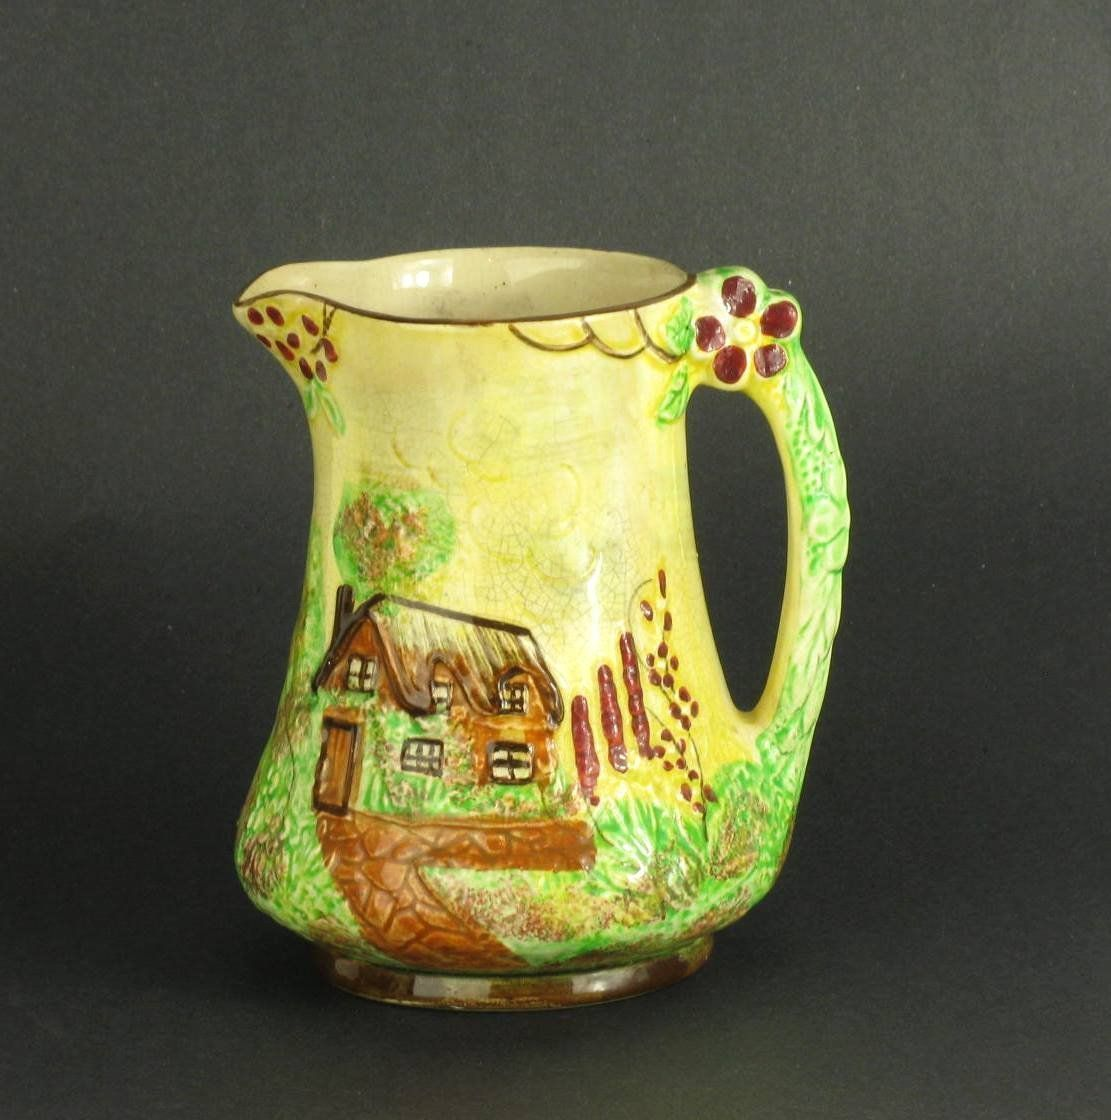 "PRICE BROS. Vintage Cottage Ware 7"" Pitcher"